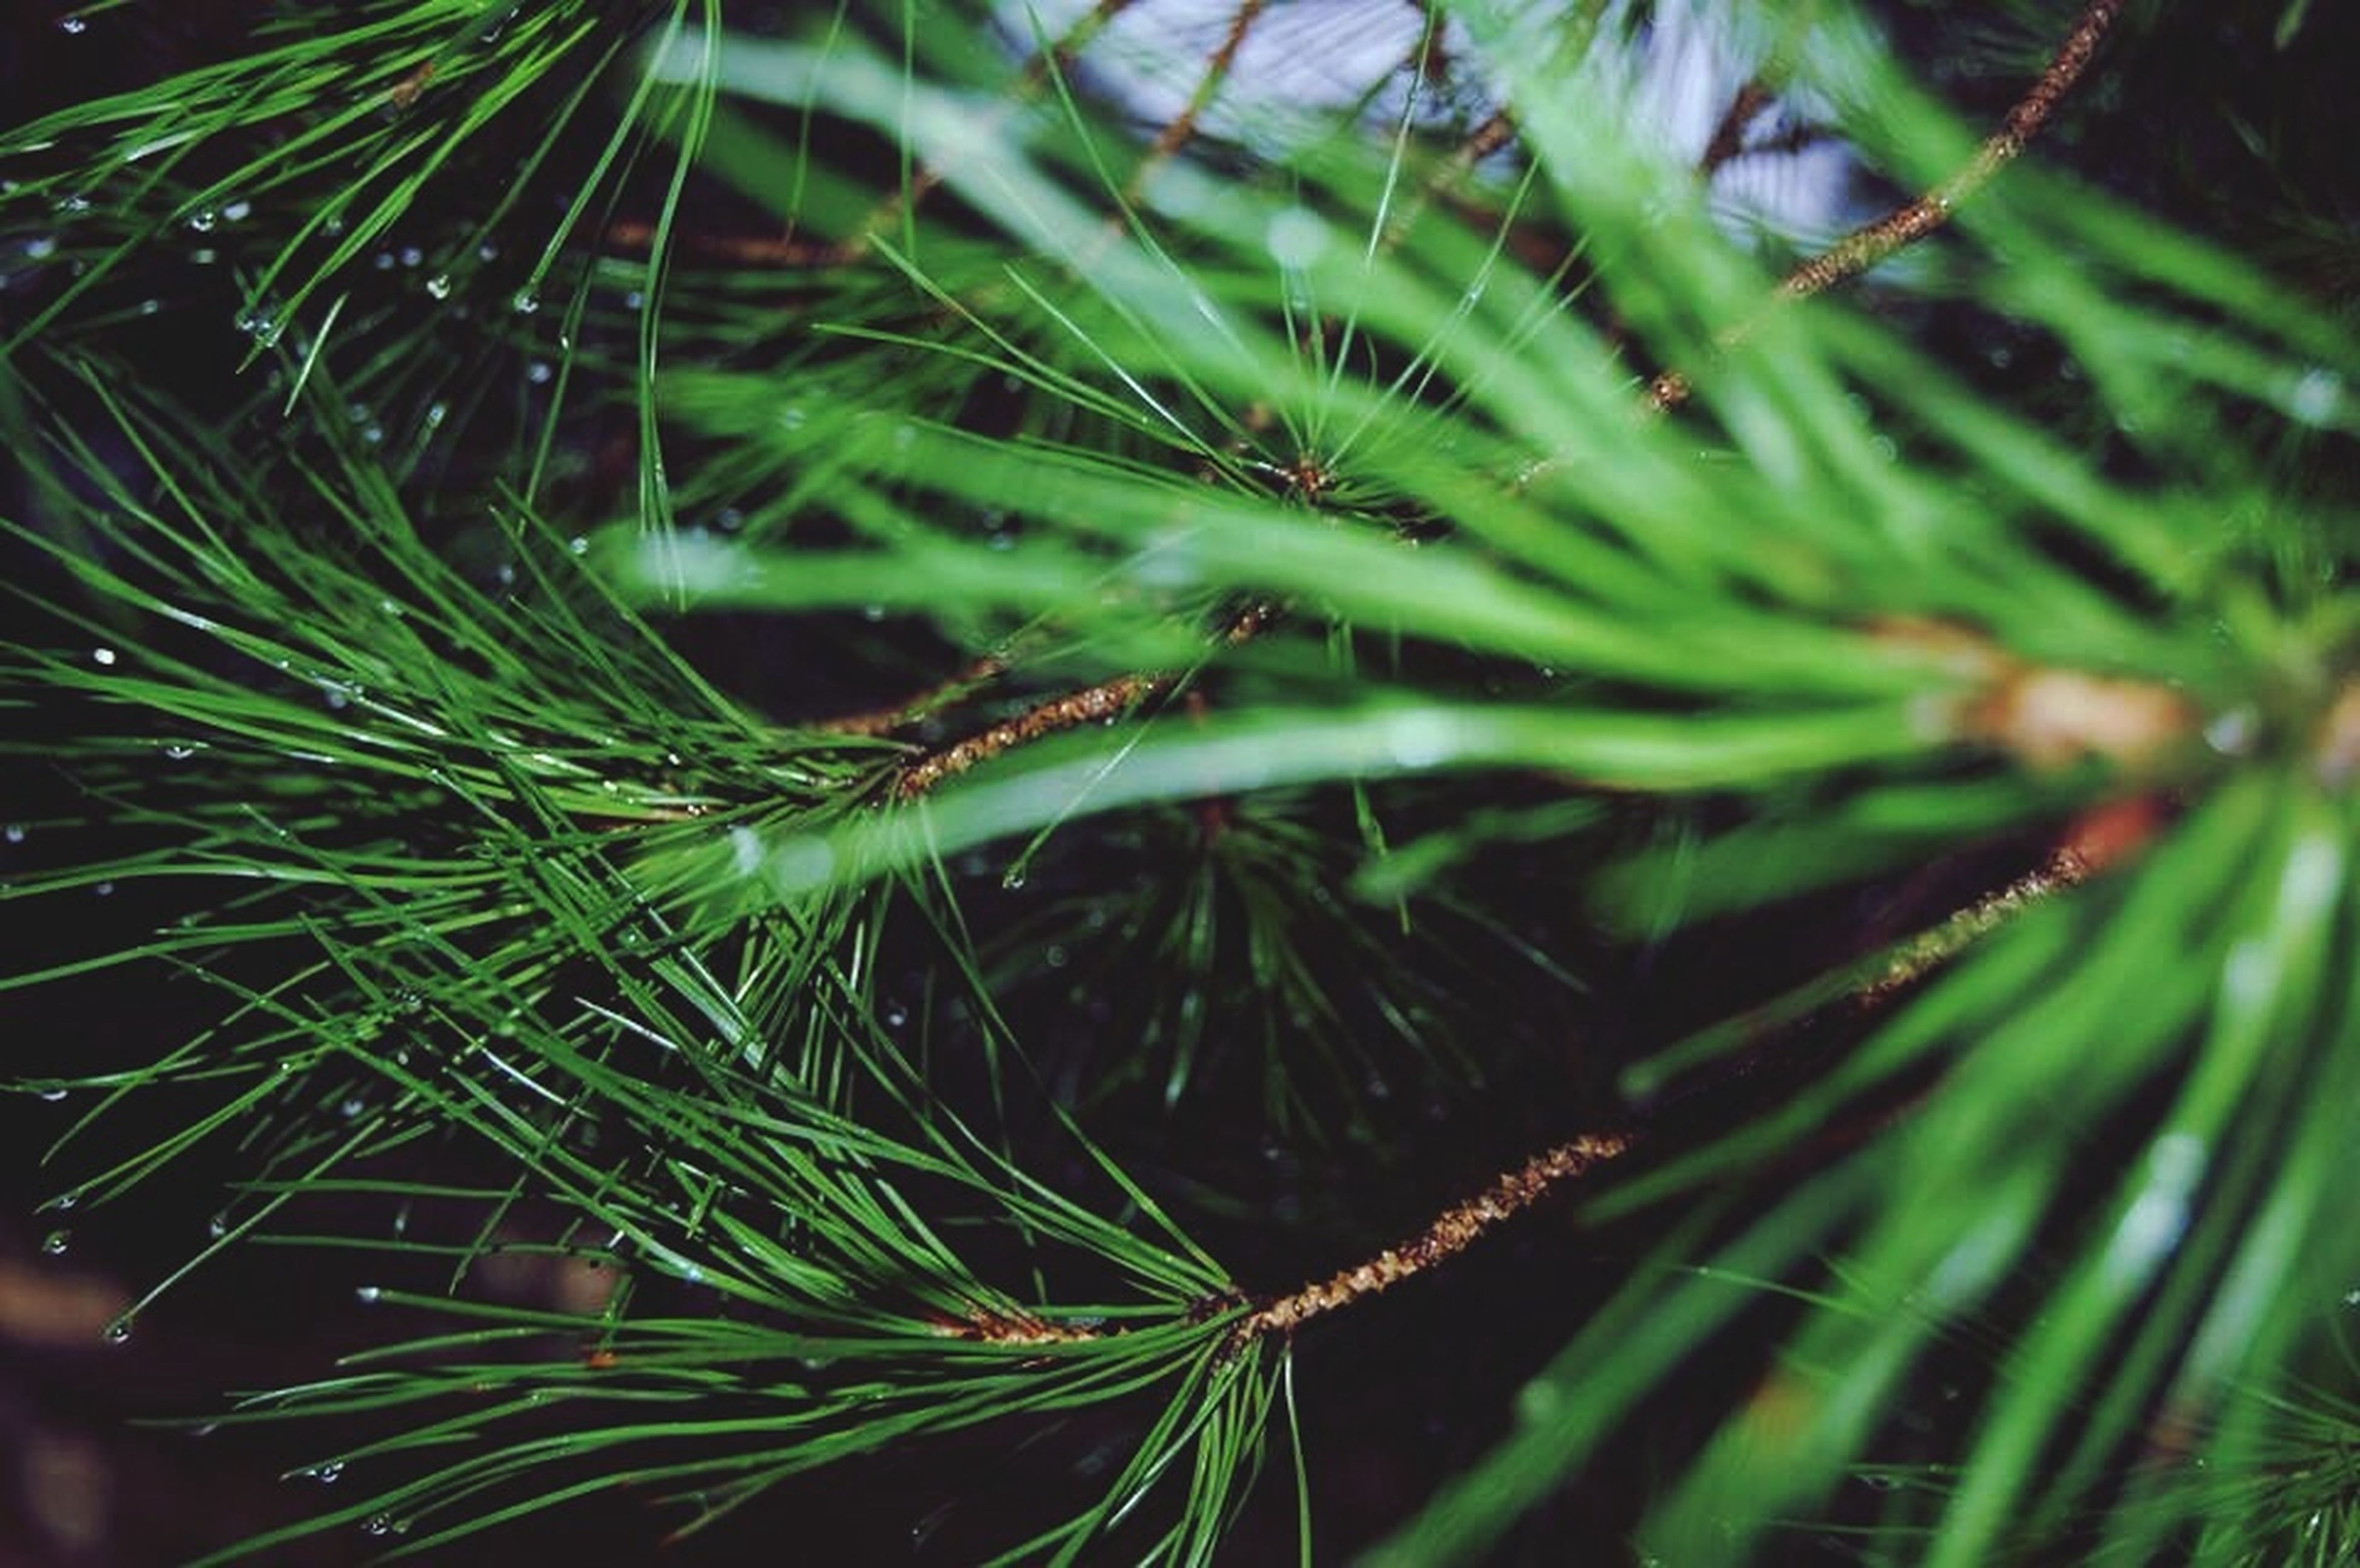 growth, close-up, nature, plant, green color, leaf, beauty in nature, focus on foreground, palm tree, tranquility, outdoors, day, no people, tree, selective focus, freshness, low angle view, pine tree, branch, growing